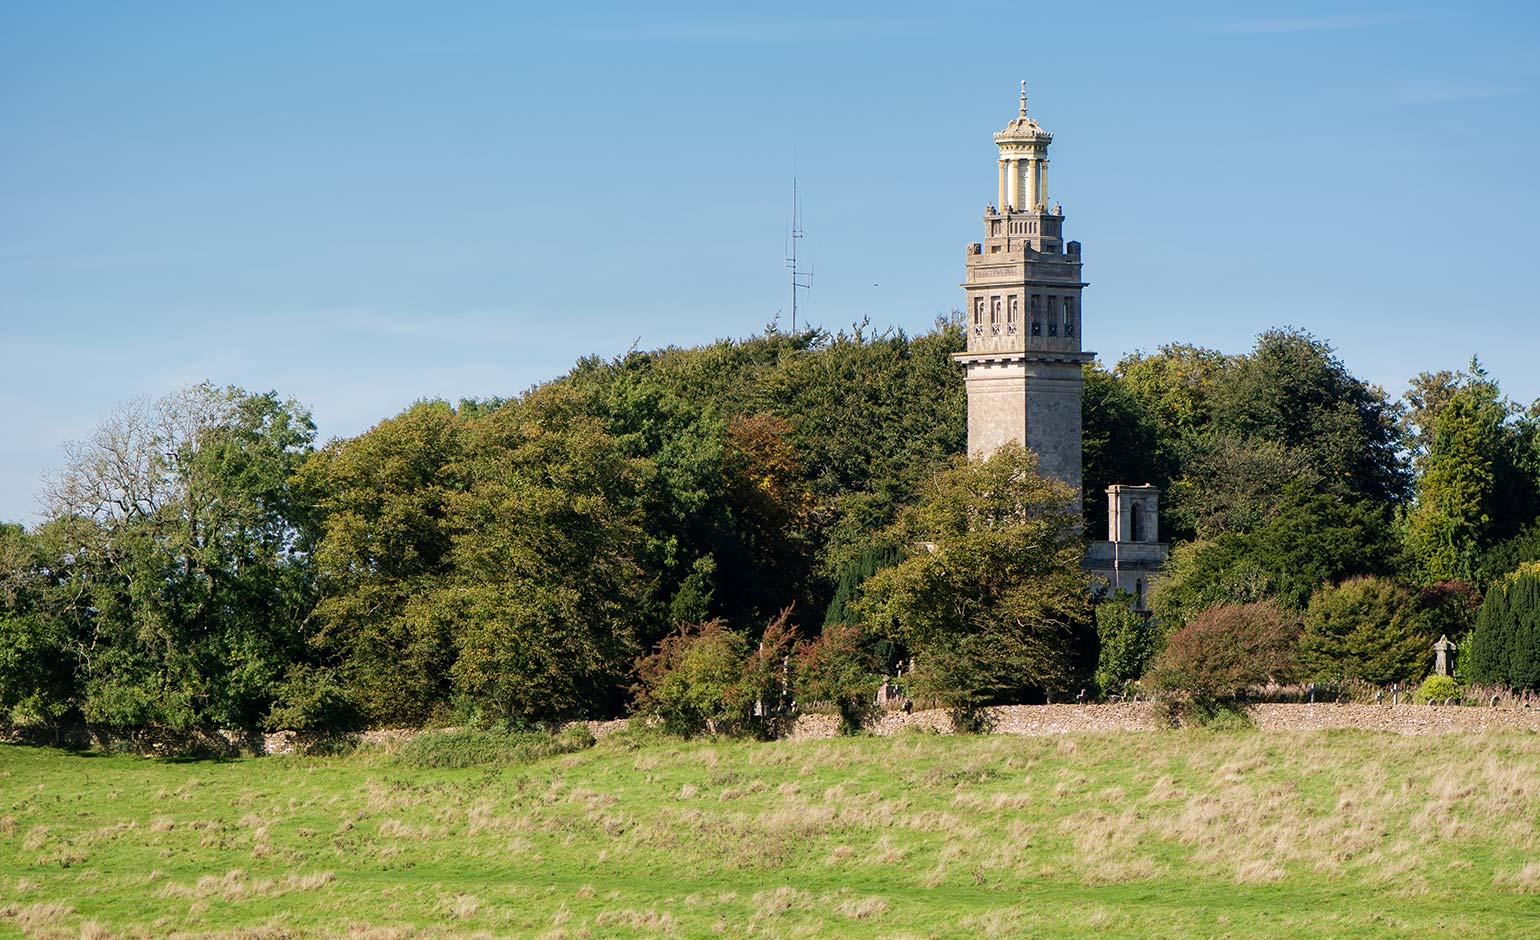 Bath Preservation Trust acquires Beckford's Tower paddocks and grotto